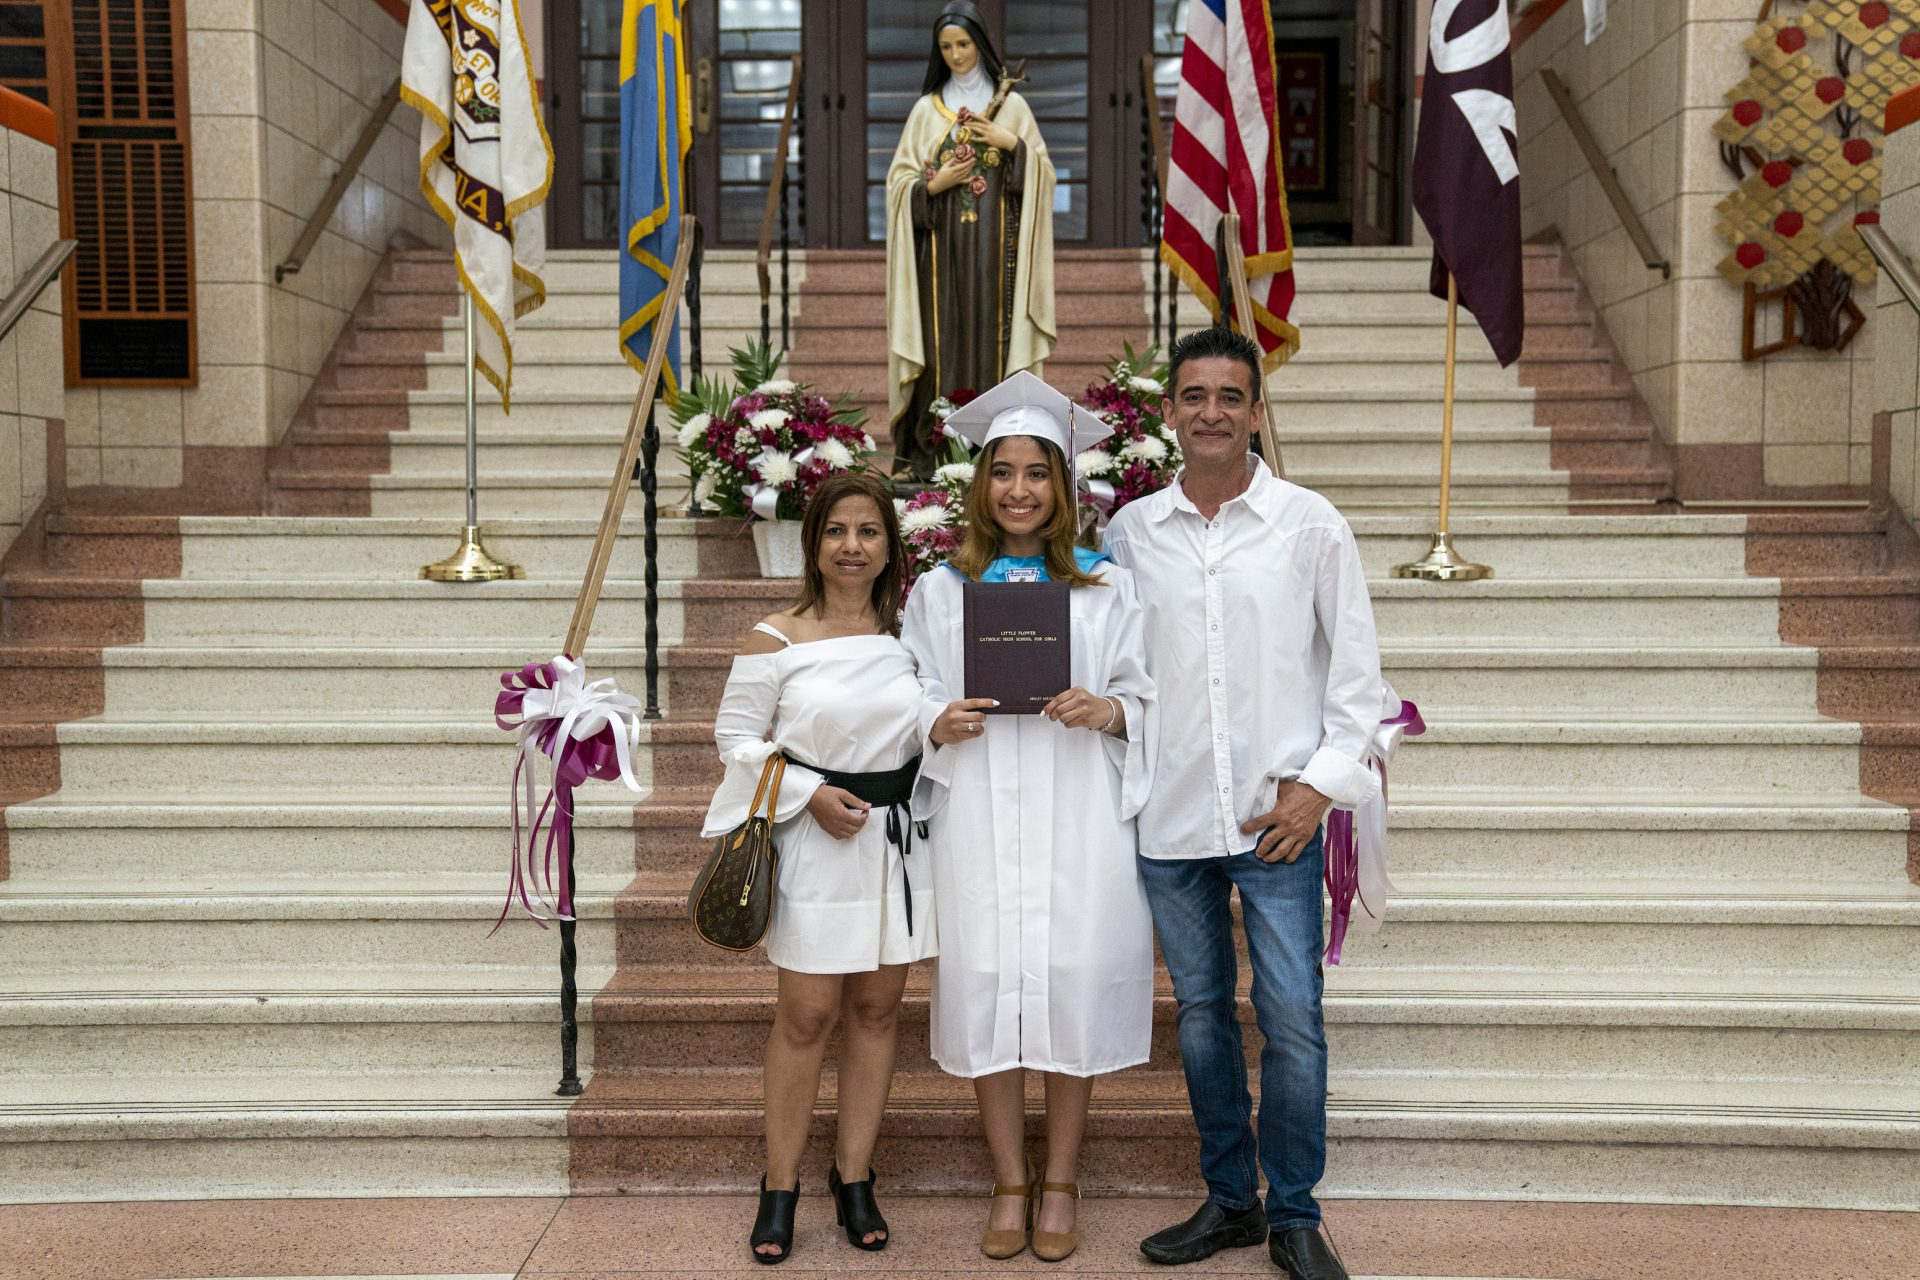 Ashley Acevedo with her parents Elena and Johnny on graduation day inside Little Flower Catholic School for Girls.